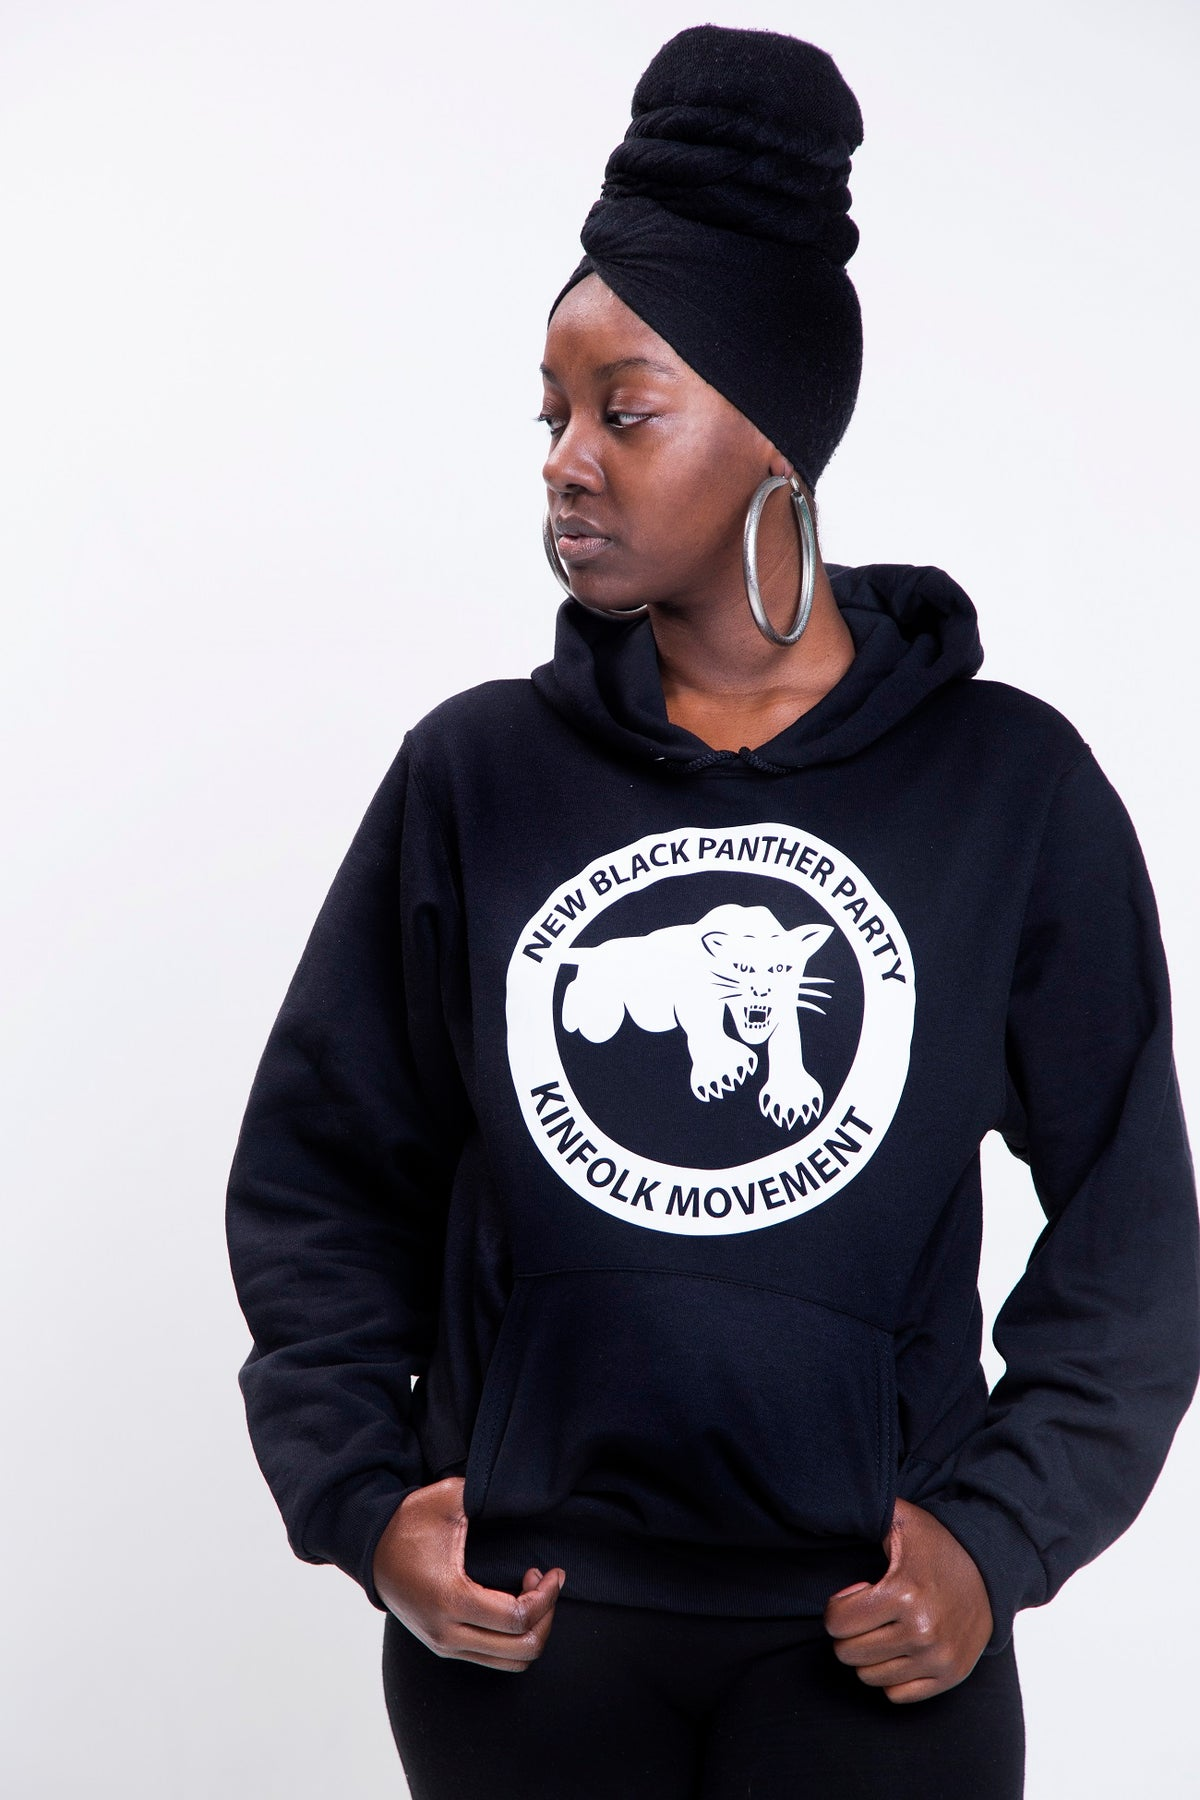 Image of Black New Black Panther Party Kinfolk Movement Hoodie (Unisex)